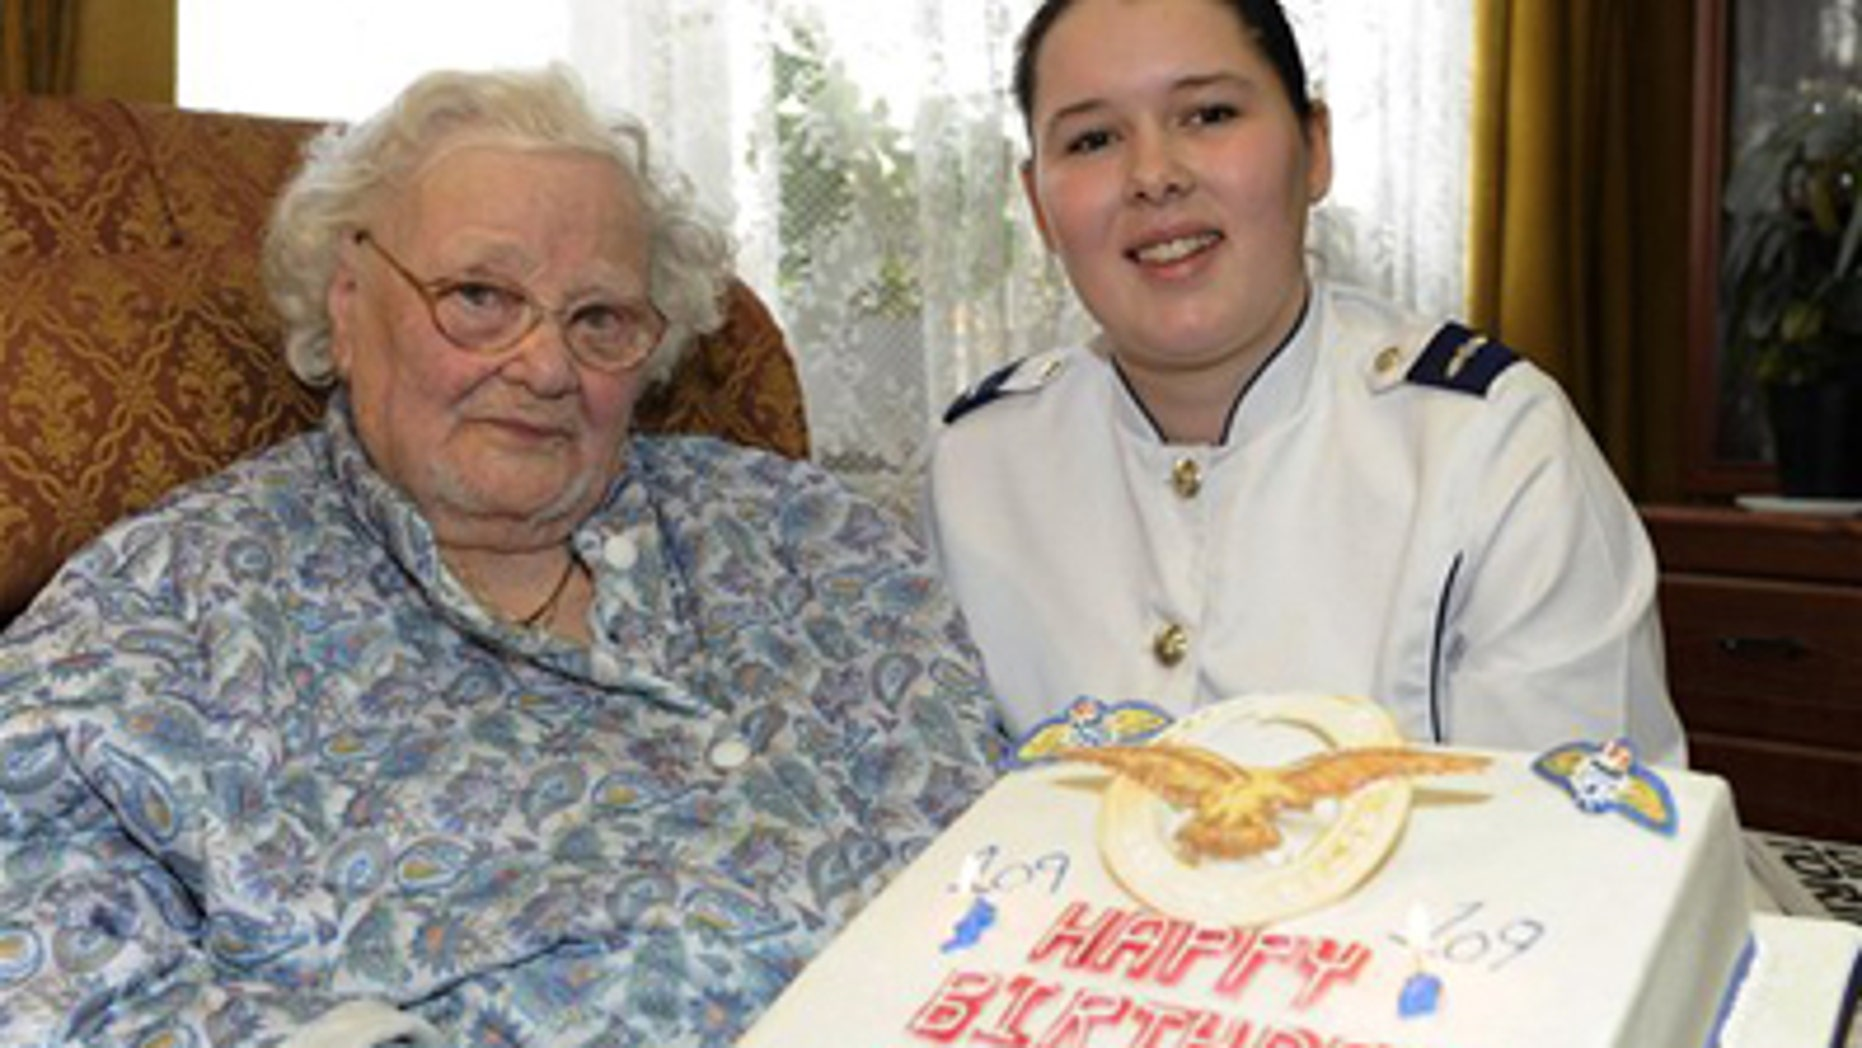 In this Feb. 19, 2010 photo released by the British Ministry of Defense, MOD, shows Florence Green, left, on her 109th birthday being presented with a birthday cake by LAC Hannah Shaw on behalf of the RAF at her home in King's Lynn, east England. Florence Green, the world's last known veteran of World War I, has died at the age of 110, the care home where she lived said Tuesday.